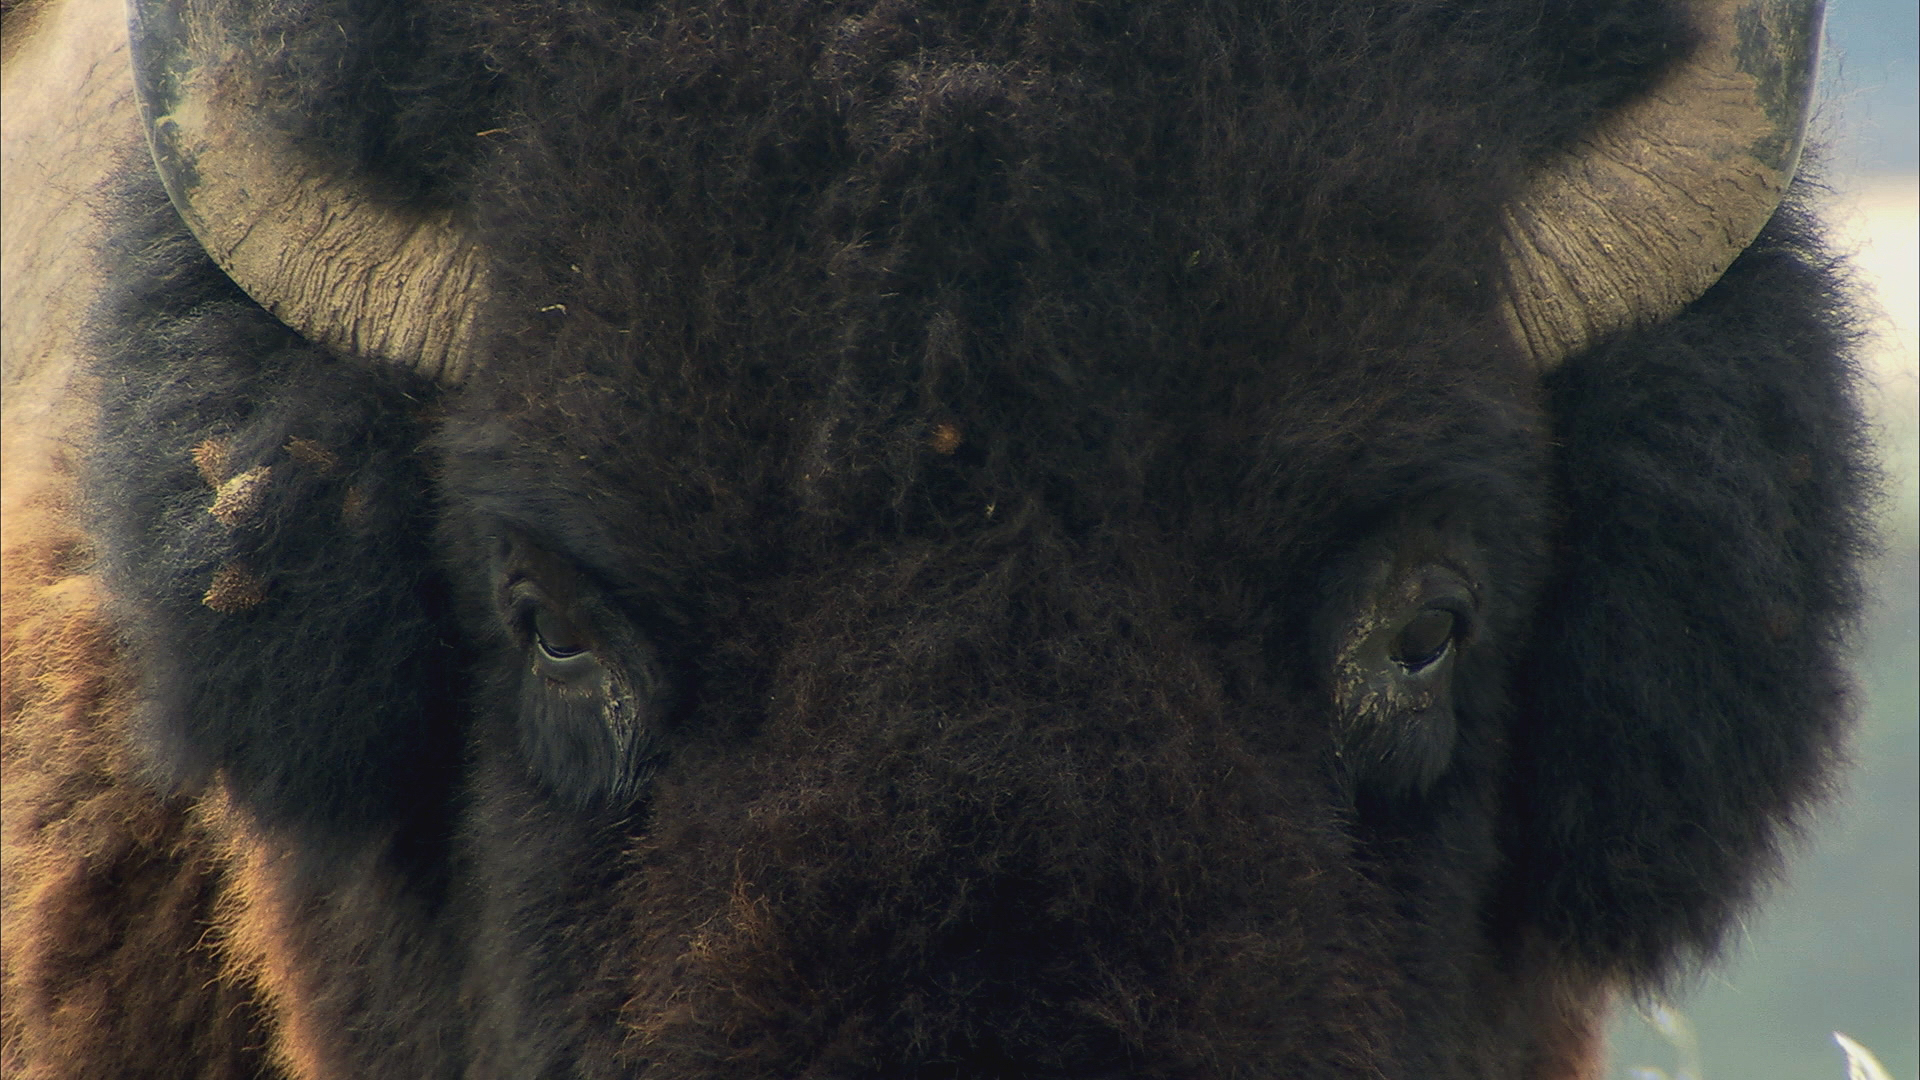 lookinga buffalo in the eyes